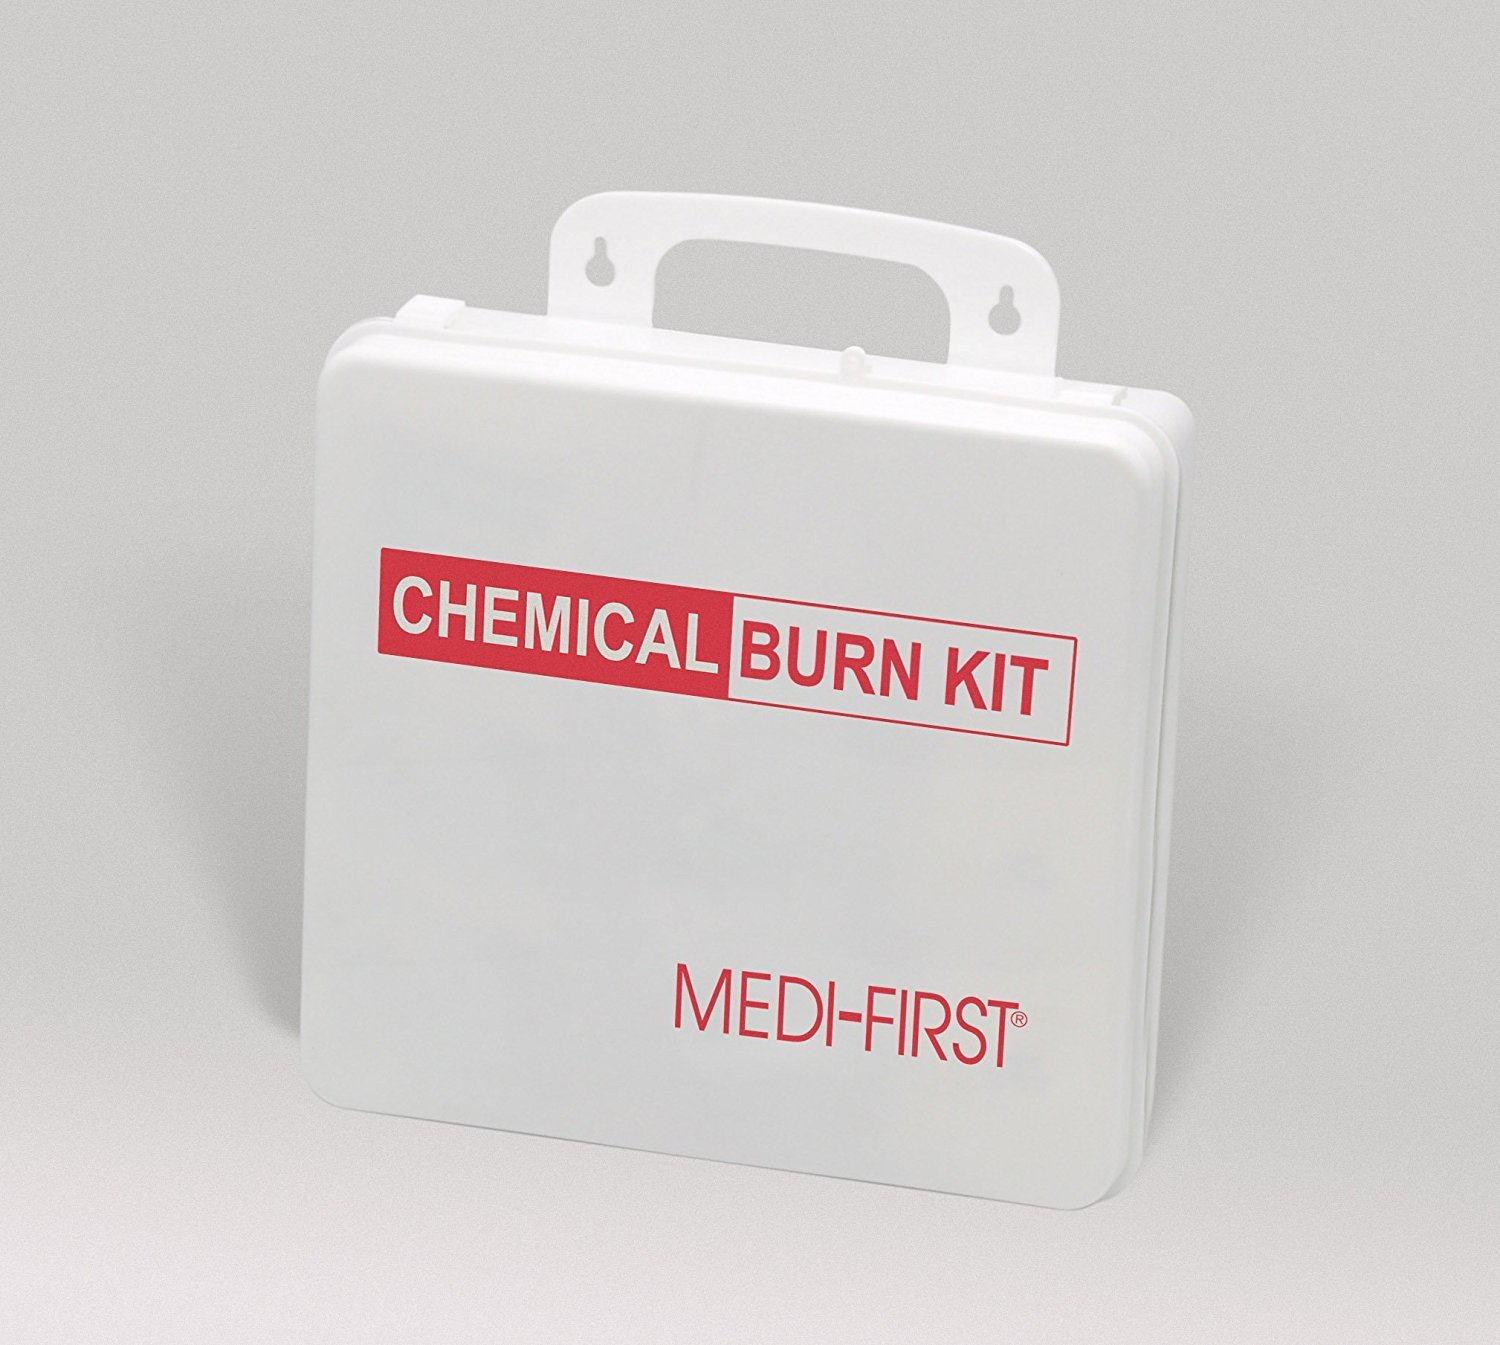 Medique Products 89612 Chemical Burn Kit, Filled